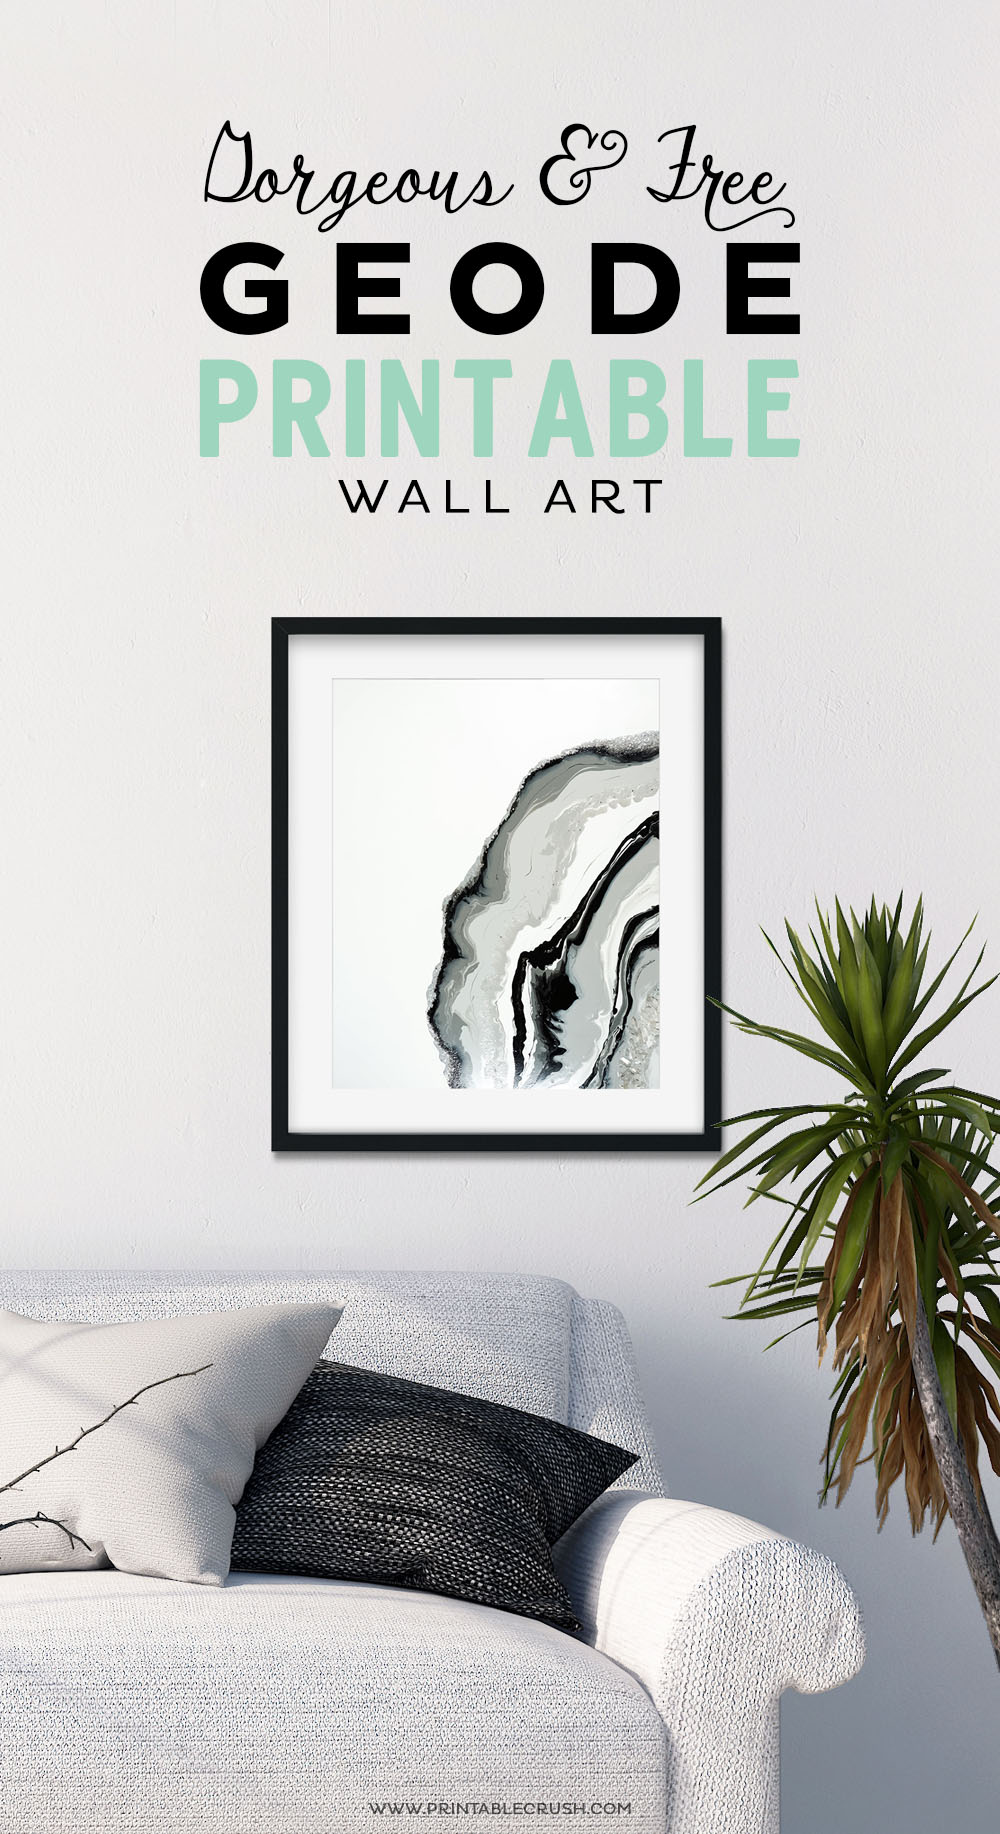 Free geode printable wall art for your modern home decor! Would be great for a gallery wall, printing on canvas, or use it for hand lettering projects.